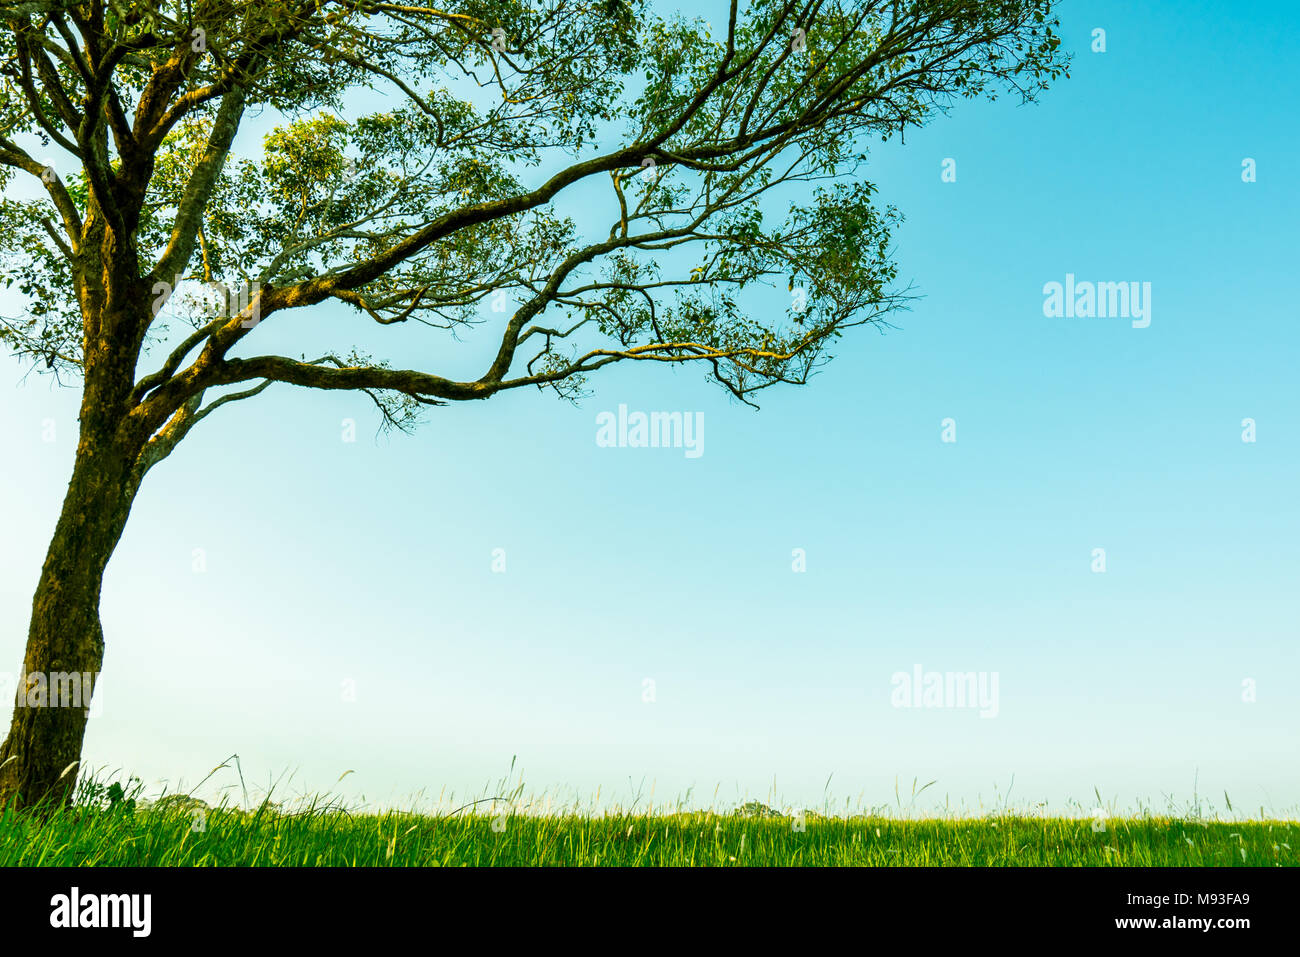 Big Green Tree With Beautiful Branches Pattern And Green Grass Field